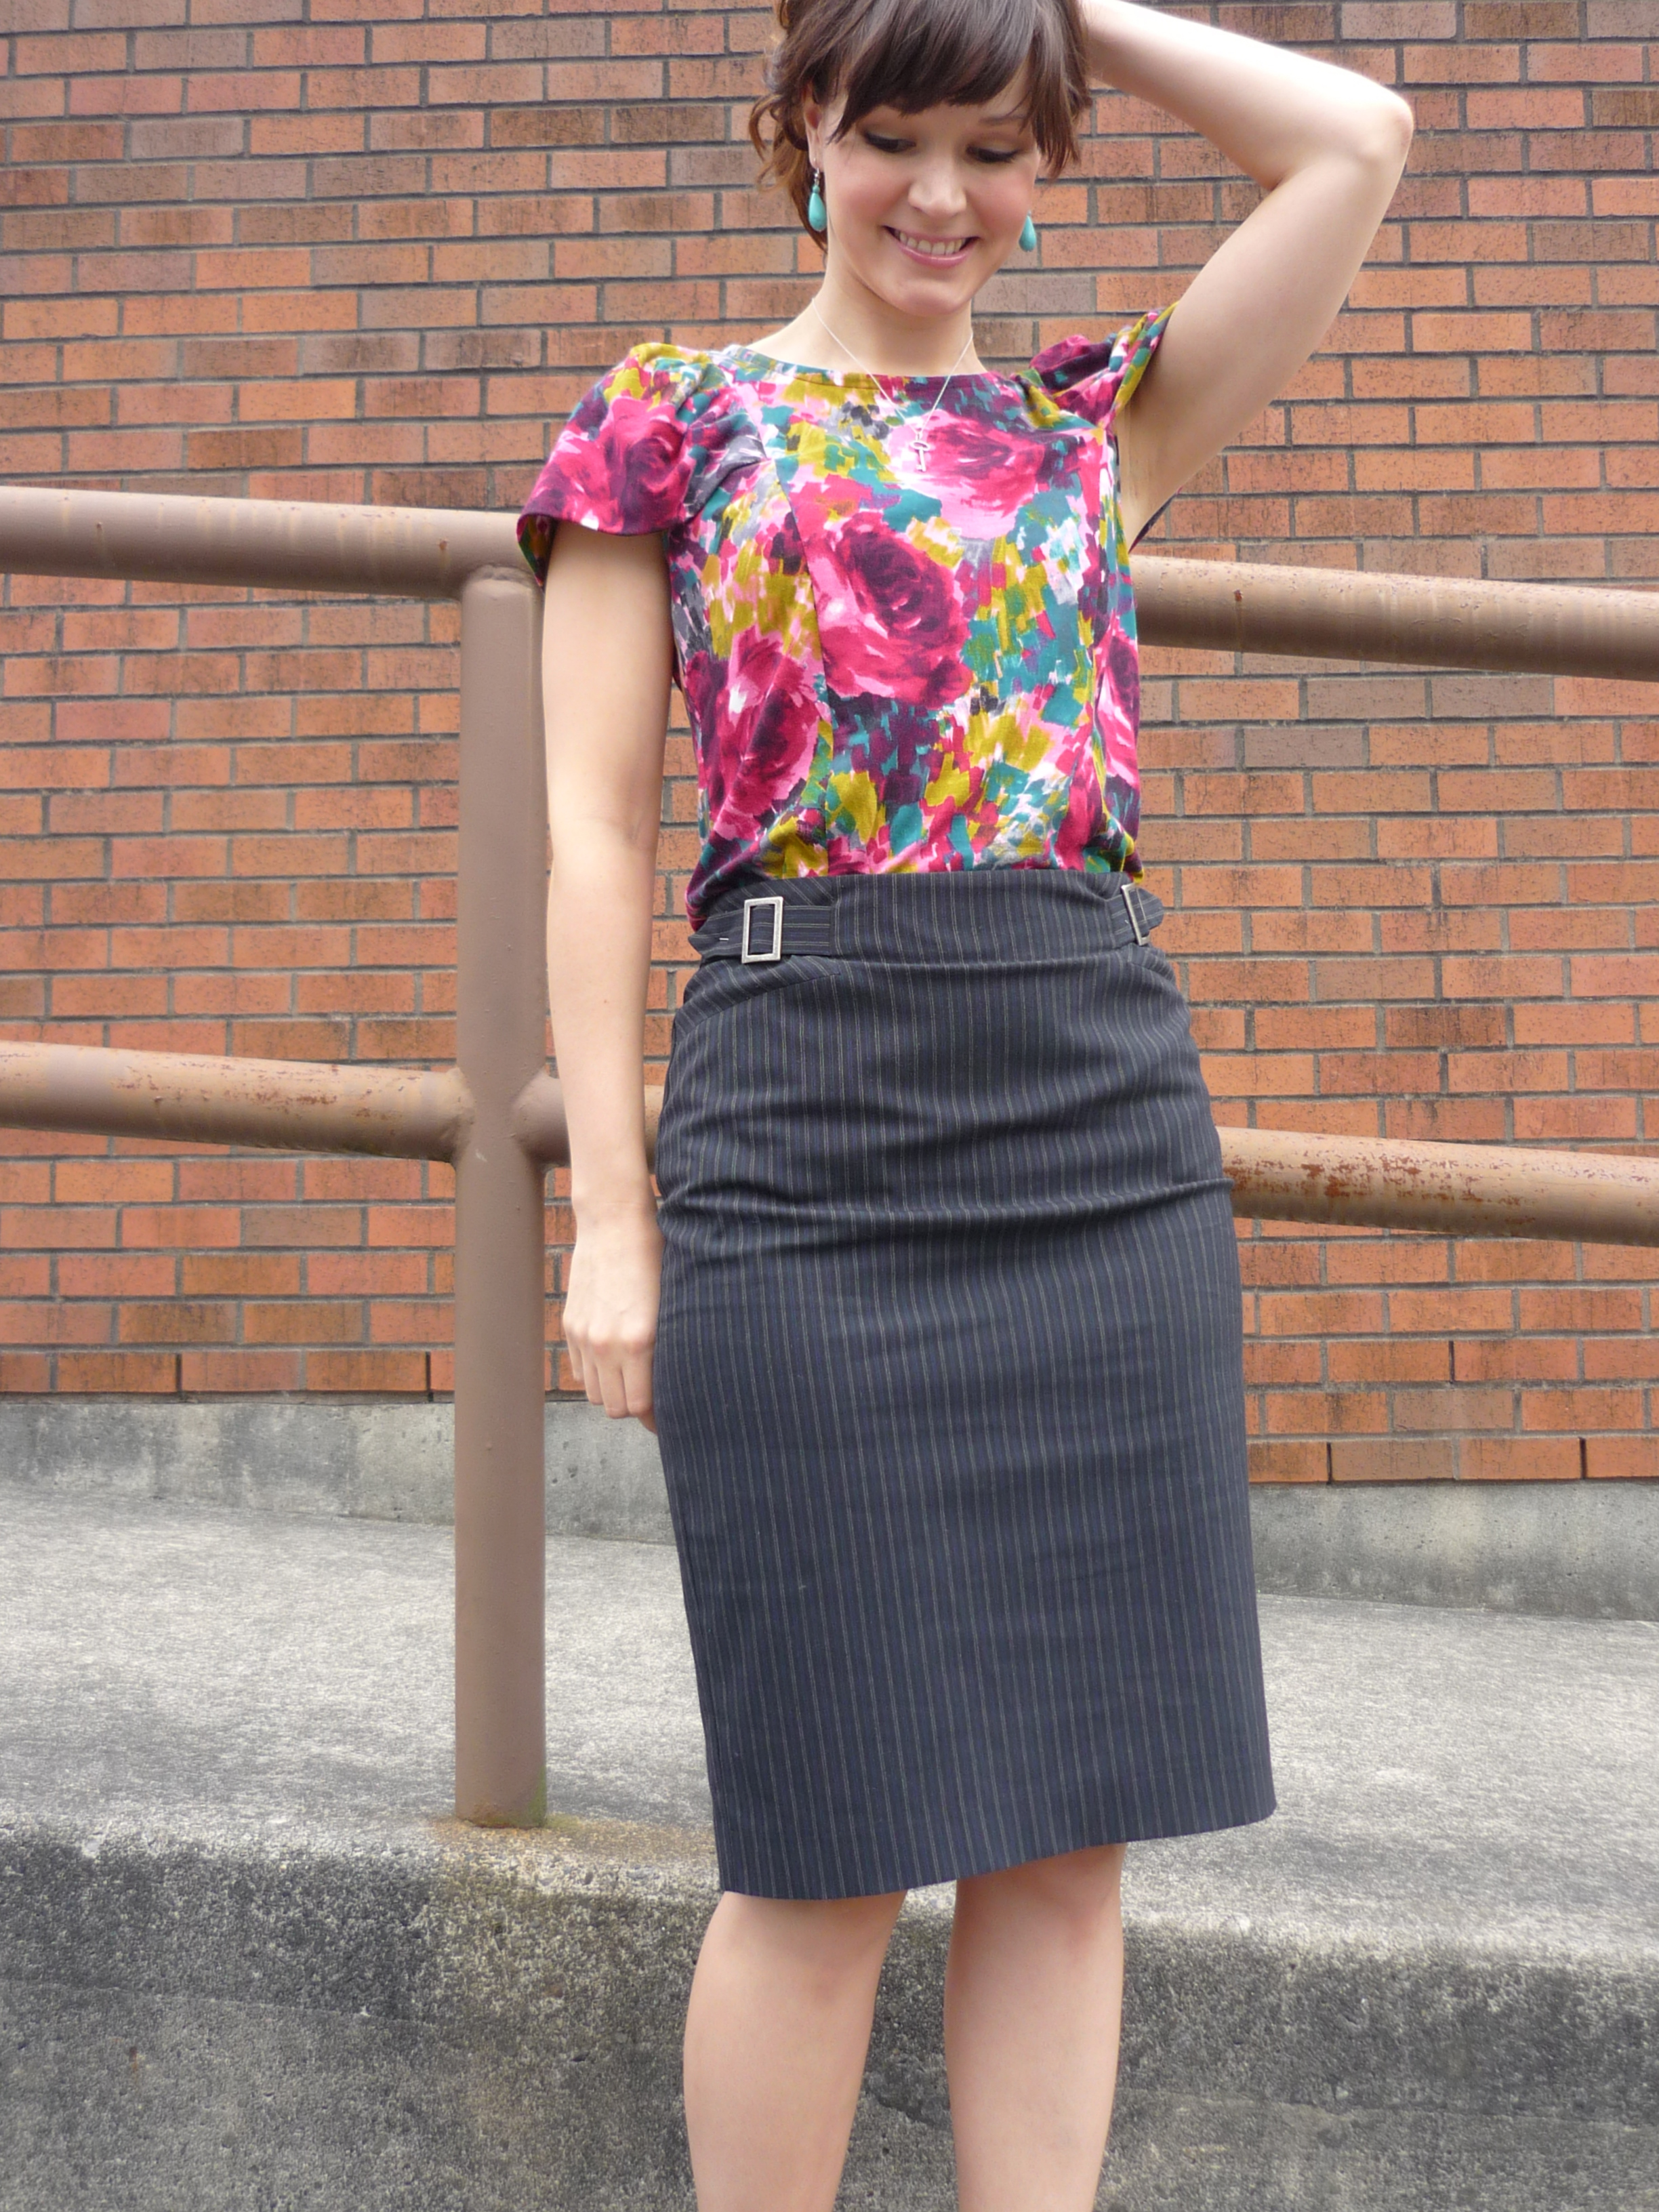 Pendrell Blouse in Knit Fabric: Yes, it works!   Sewaholic